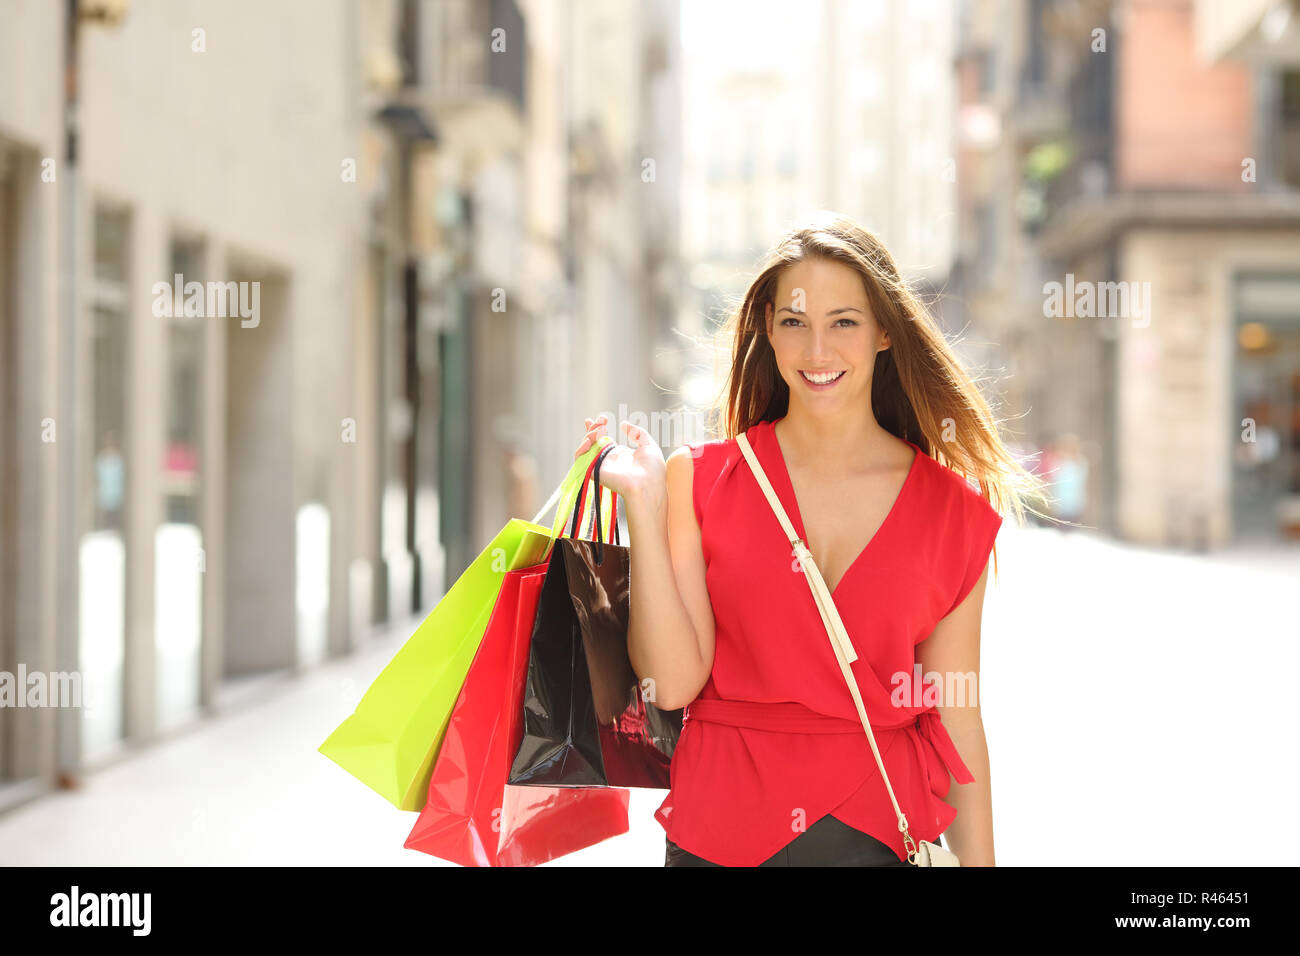 Front view portrait of a happy shopper walking towards camera holding shopping bags looking at you - Stock Image